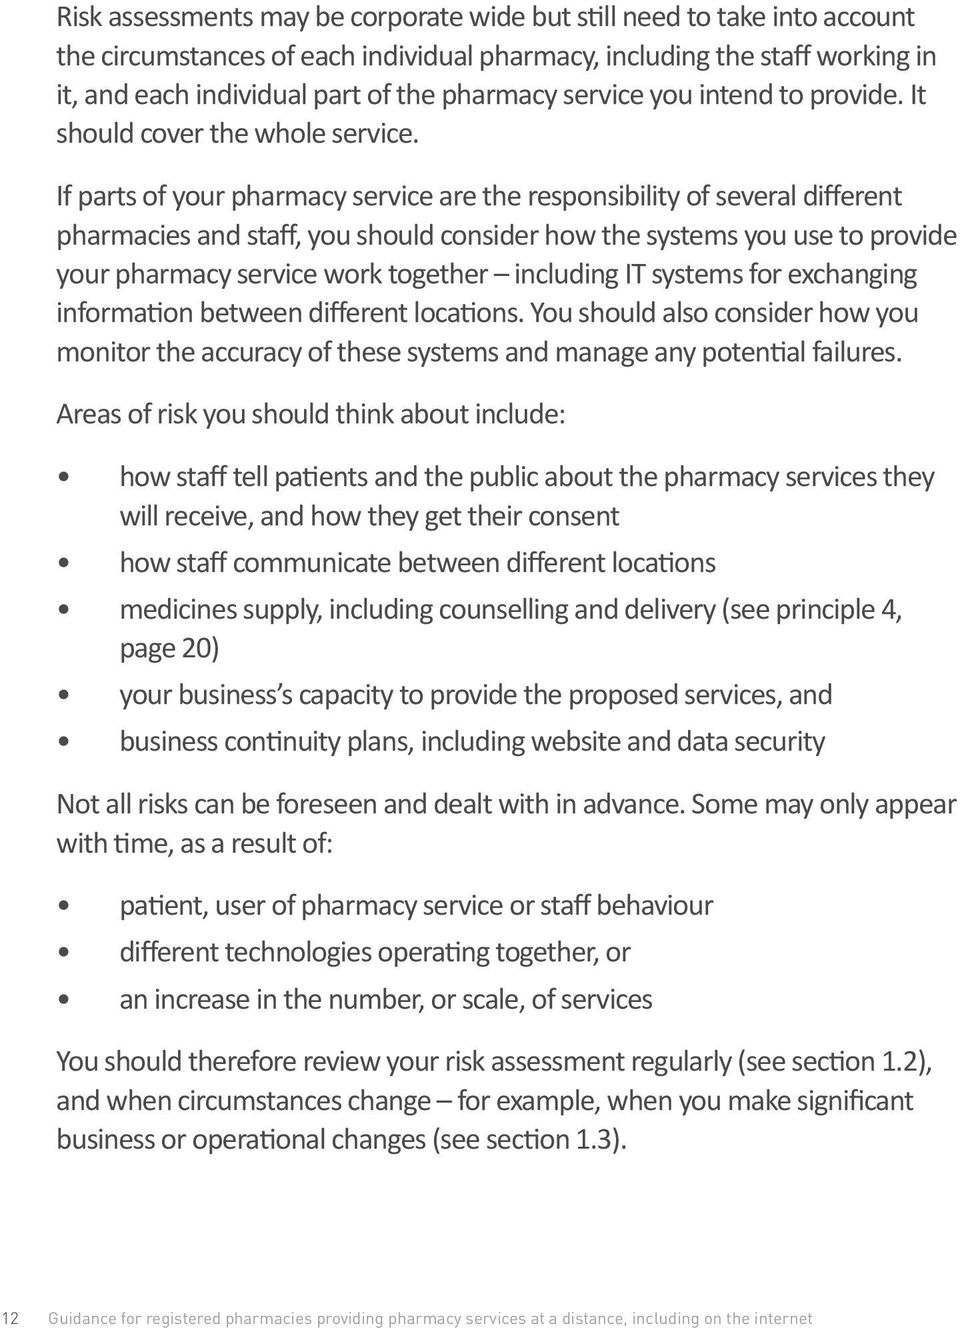 If parts of your pharmacy service are the responsibility of several different pharmacies and staff, you should consider how the systems you use to provide your pharmacy service work together